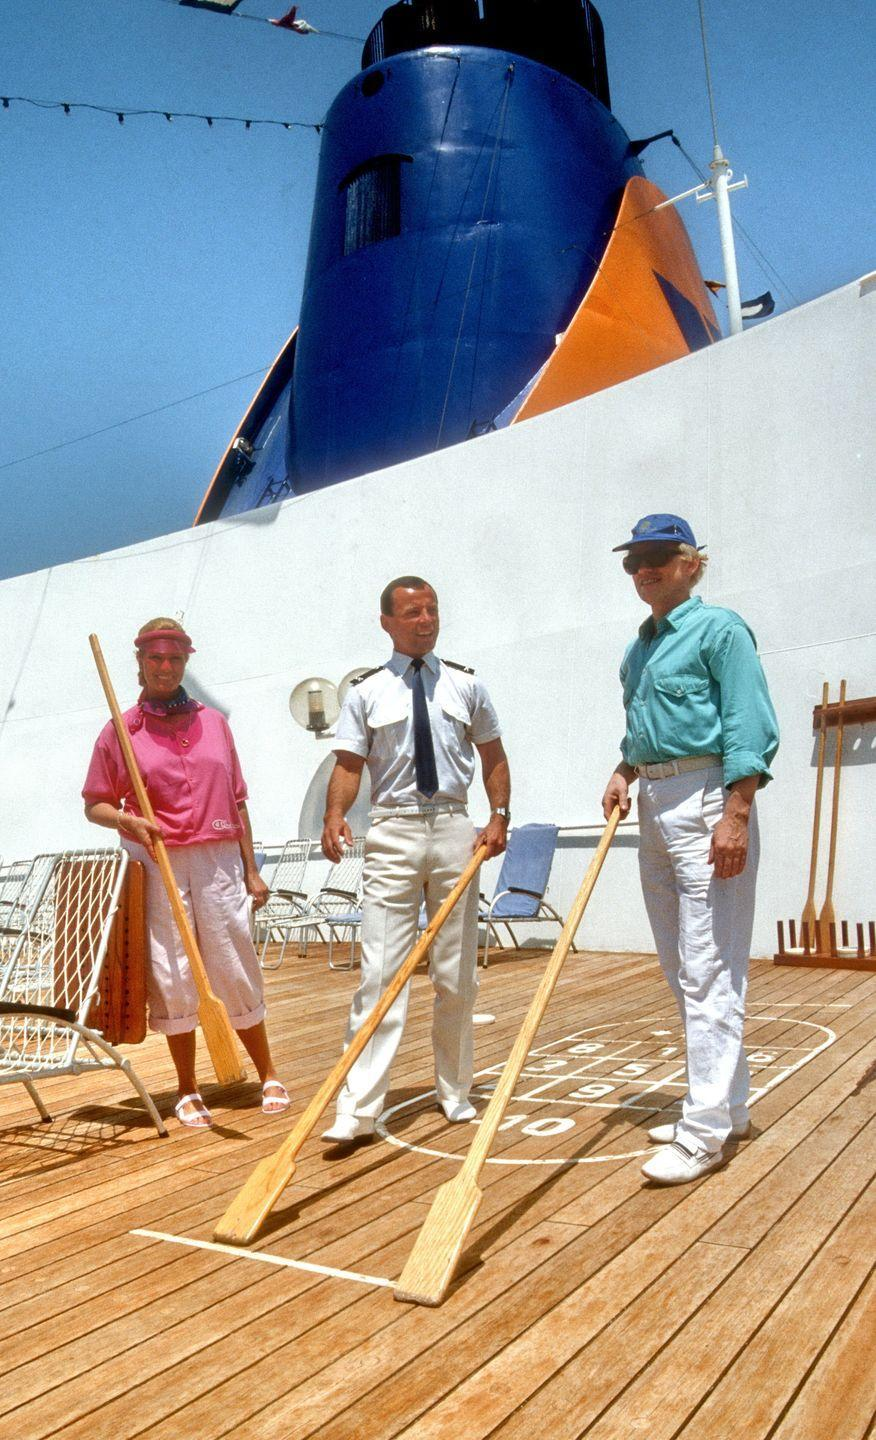 <p>Another '80s travel trend that was taking the world by storm was getting on a cruise. Cruise ships during these times saw sales rise exponentially. </p>